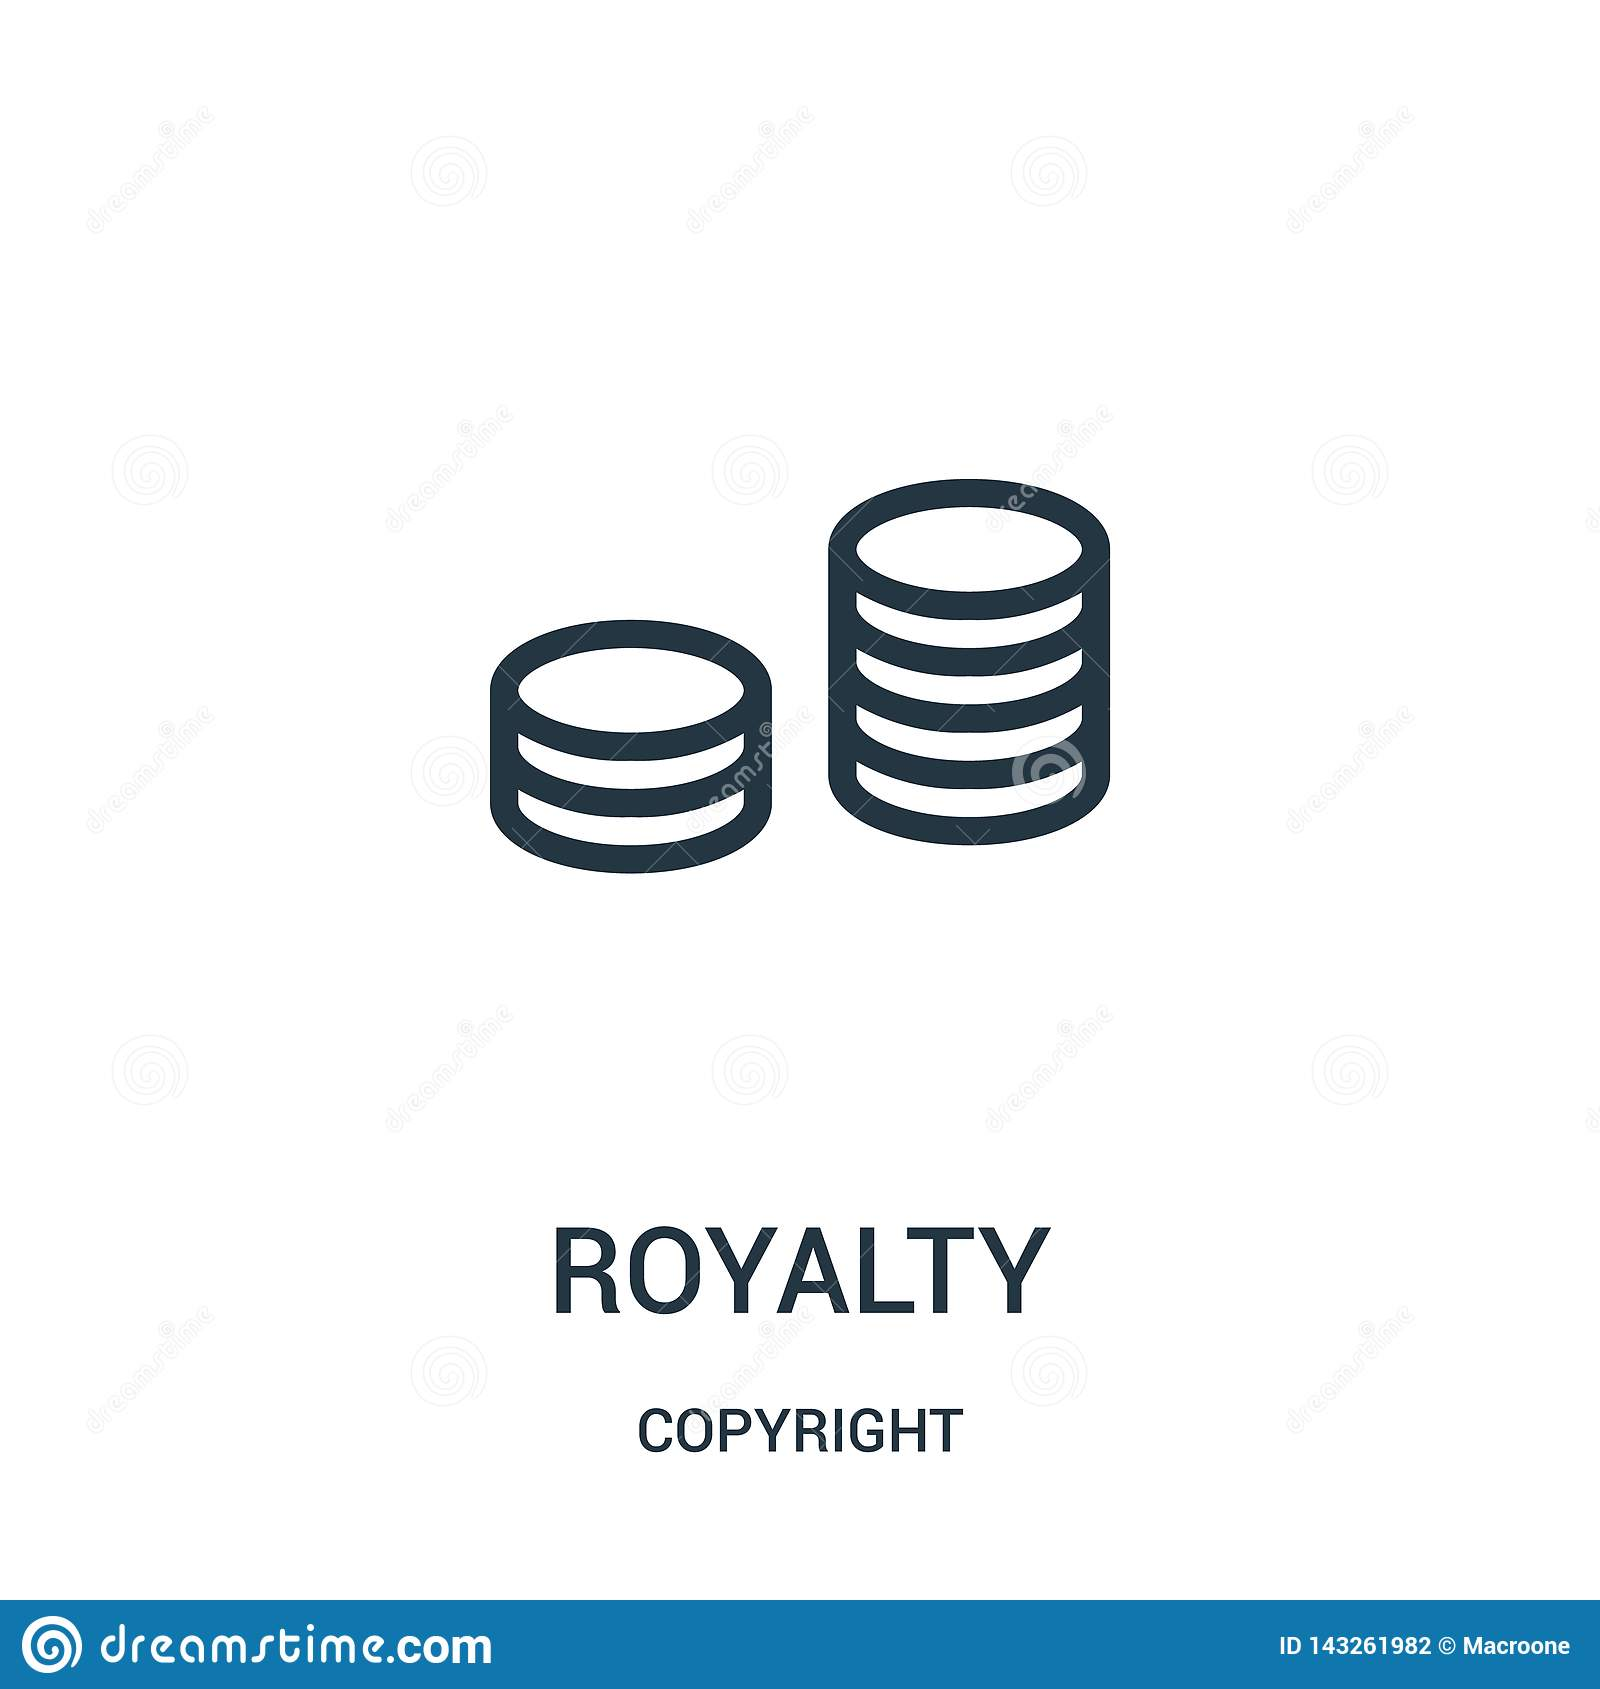 royalty icon vector from copyright collection. Thin line royalty outline icon vector illustration